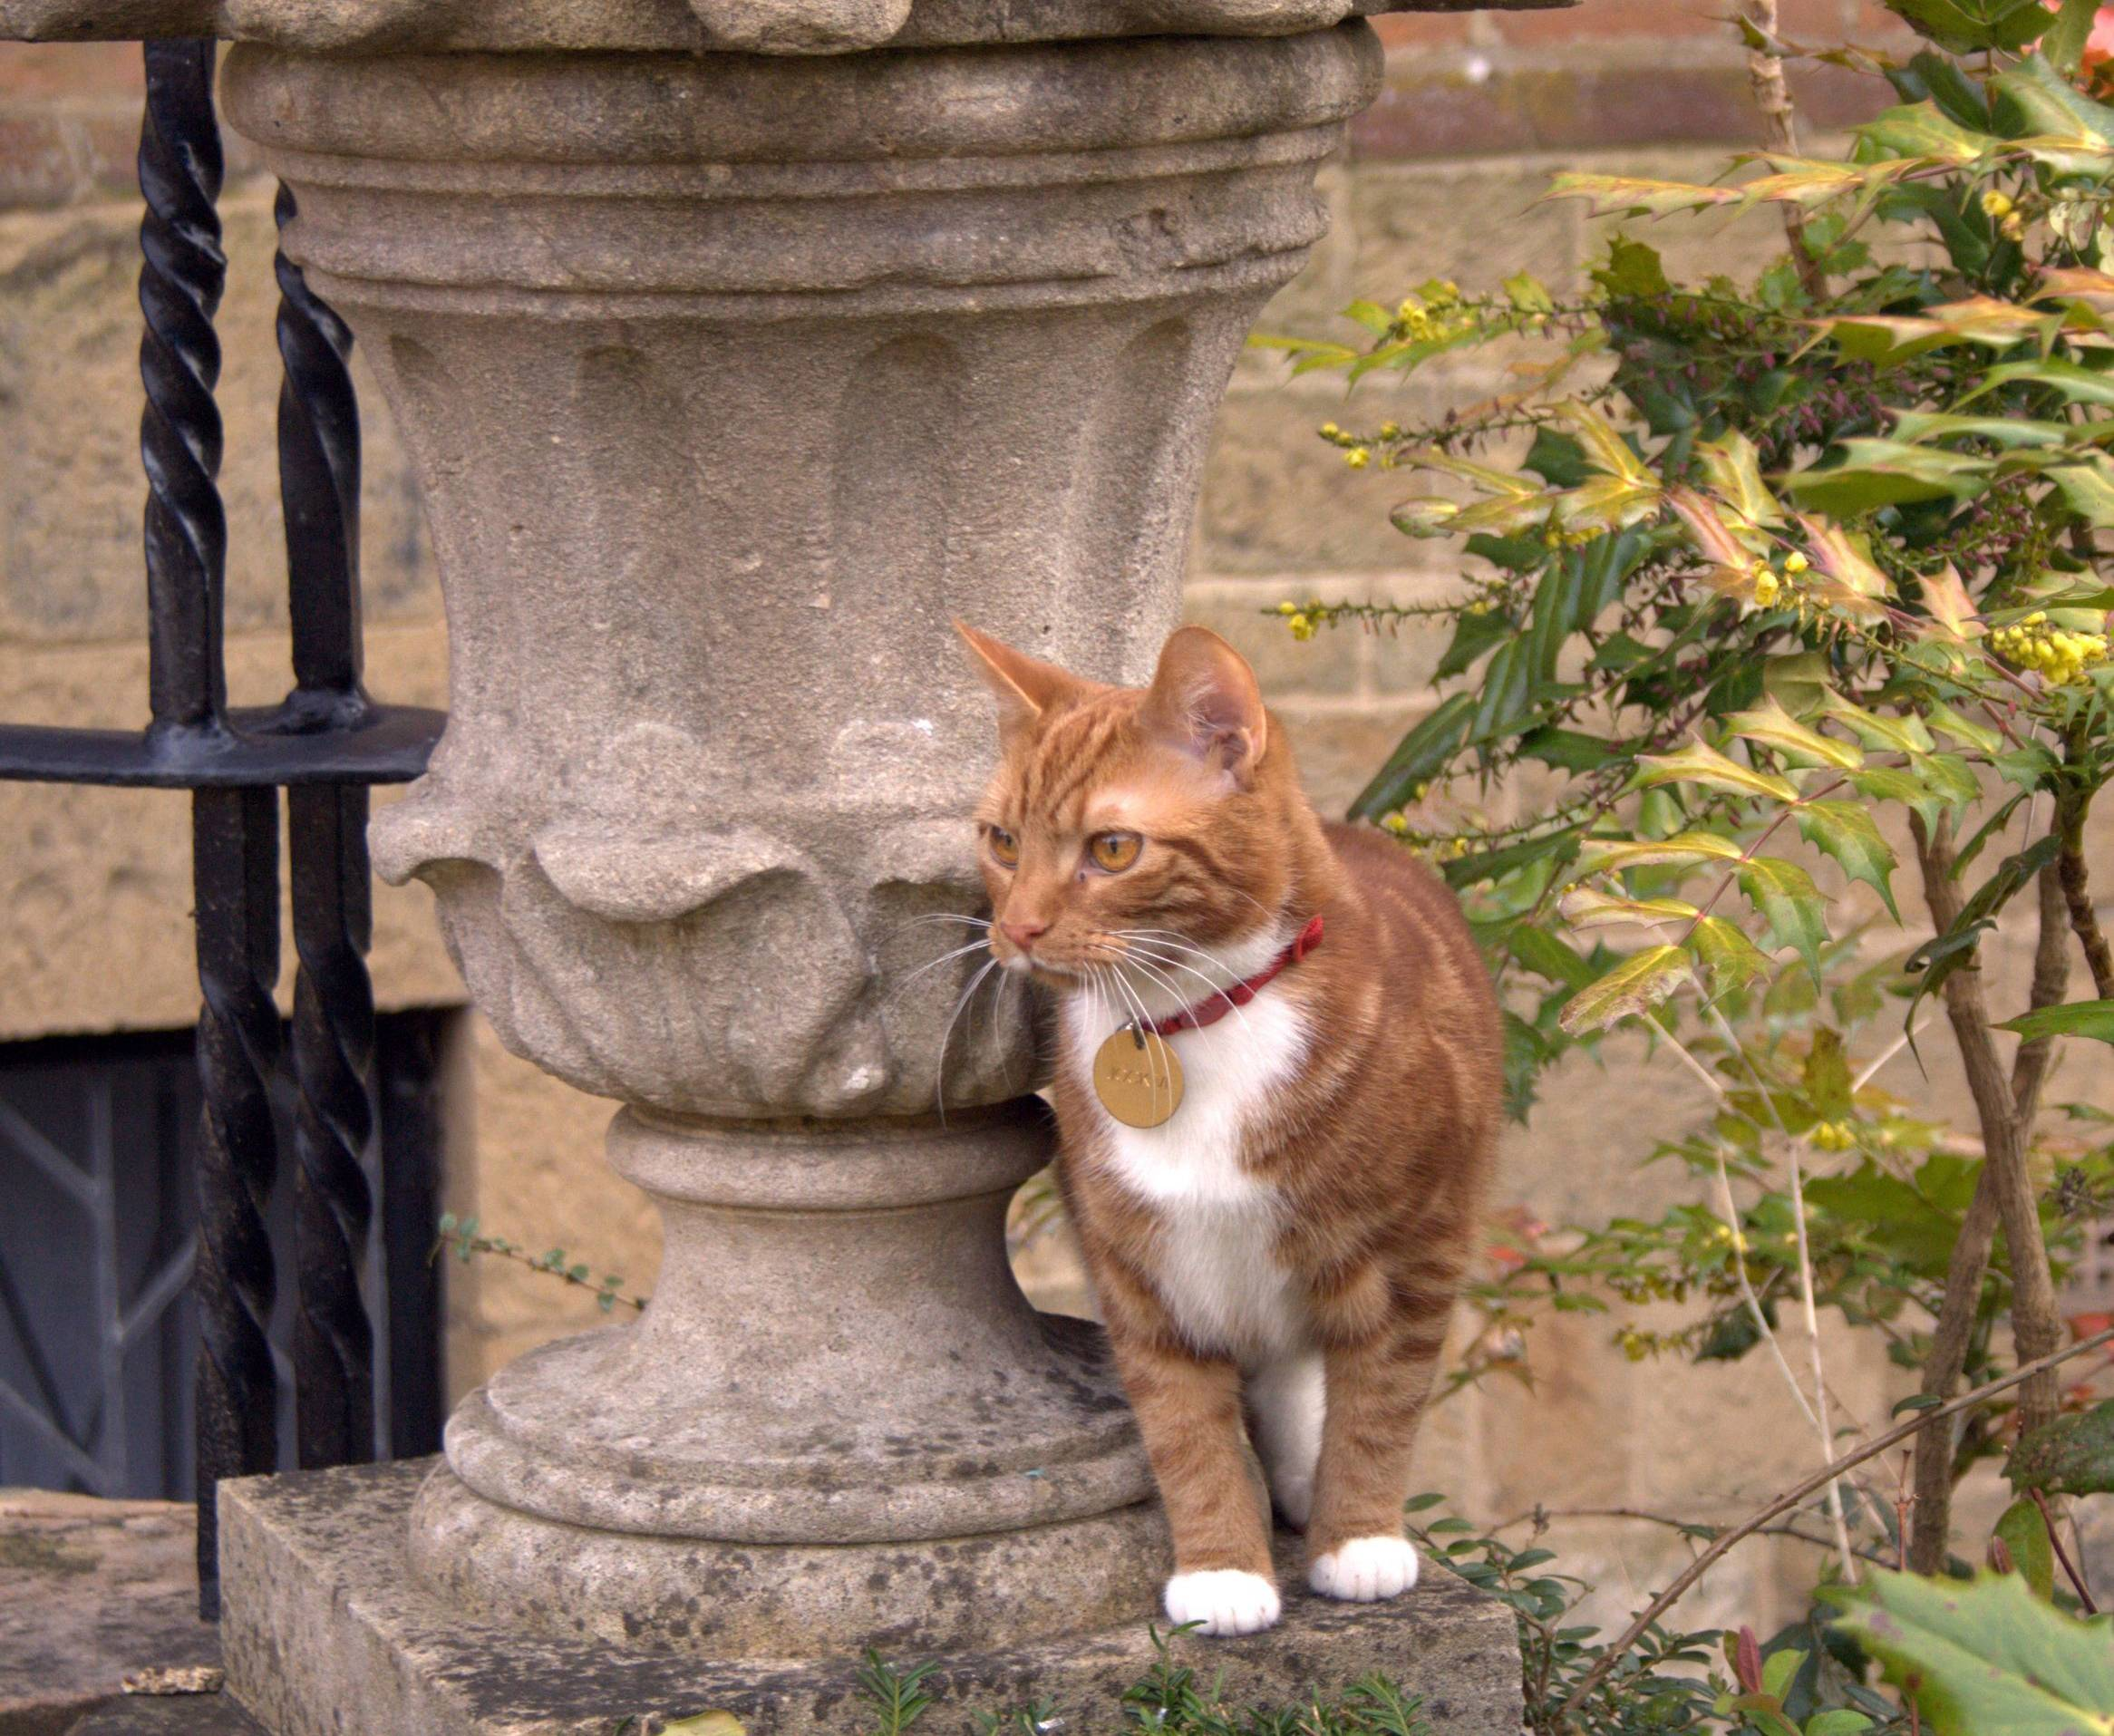 This is Jock VI, the new kitten who has taken up residence at Sir Winston Churchill's former country home in southern England to honor a request made by the ex-prime minister and his family.